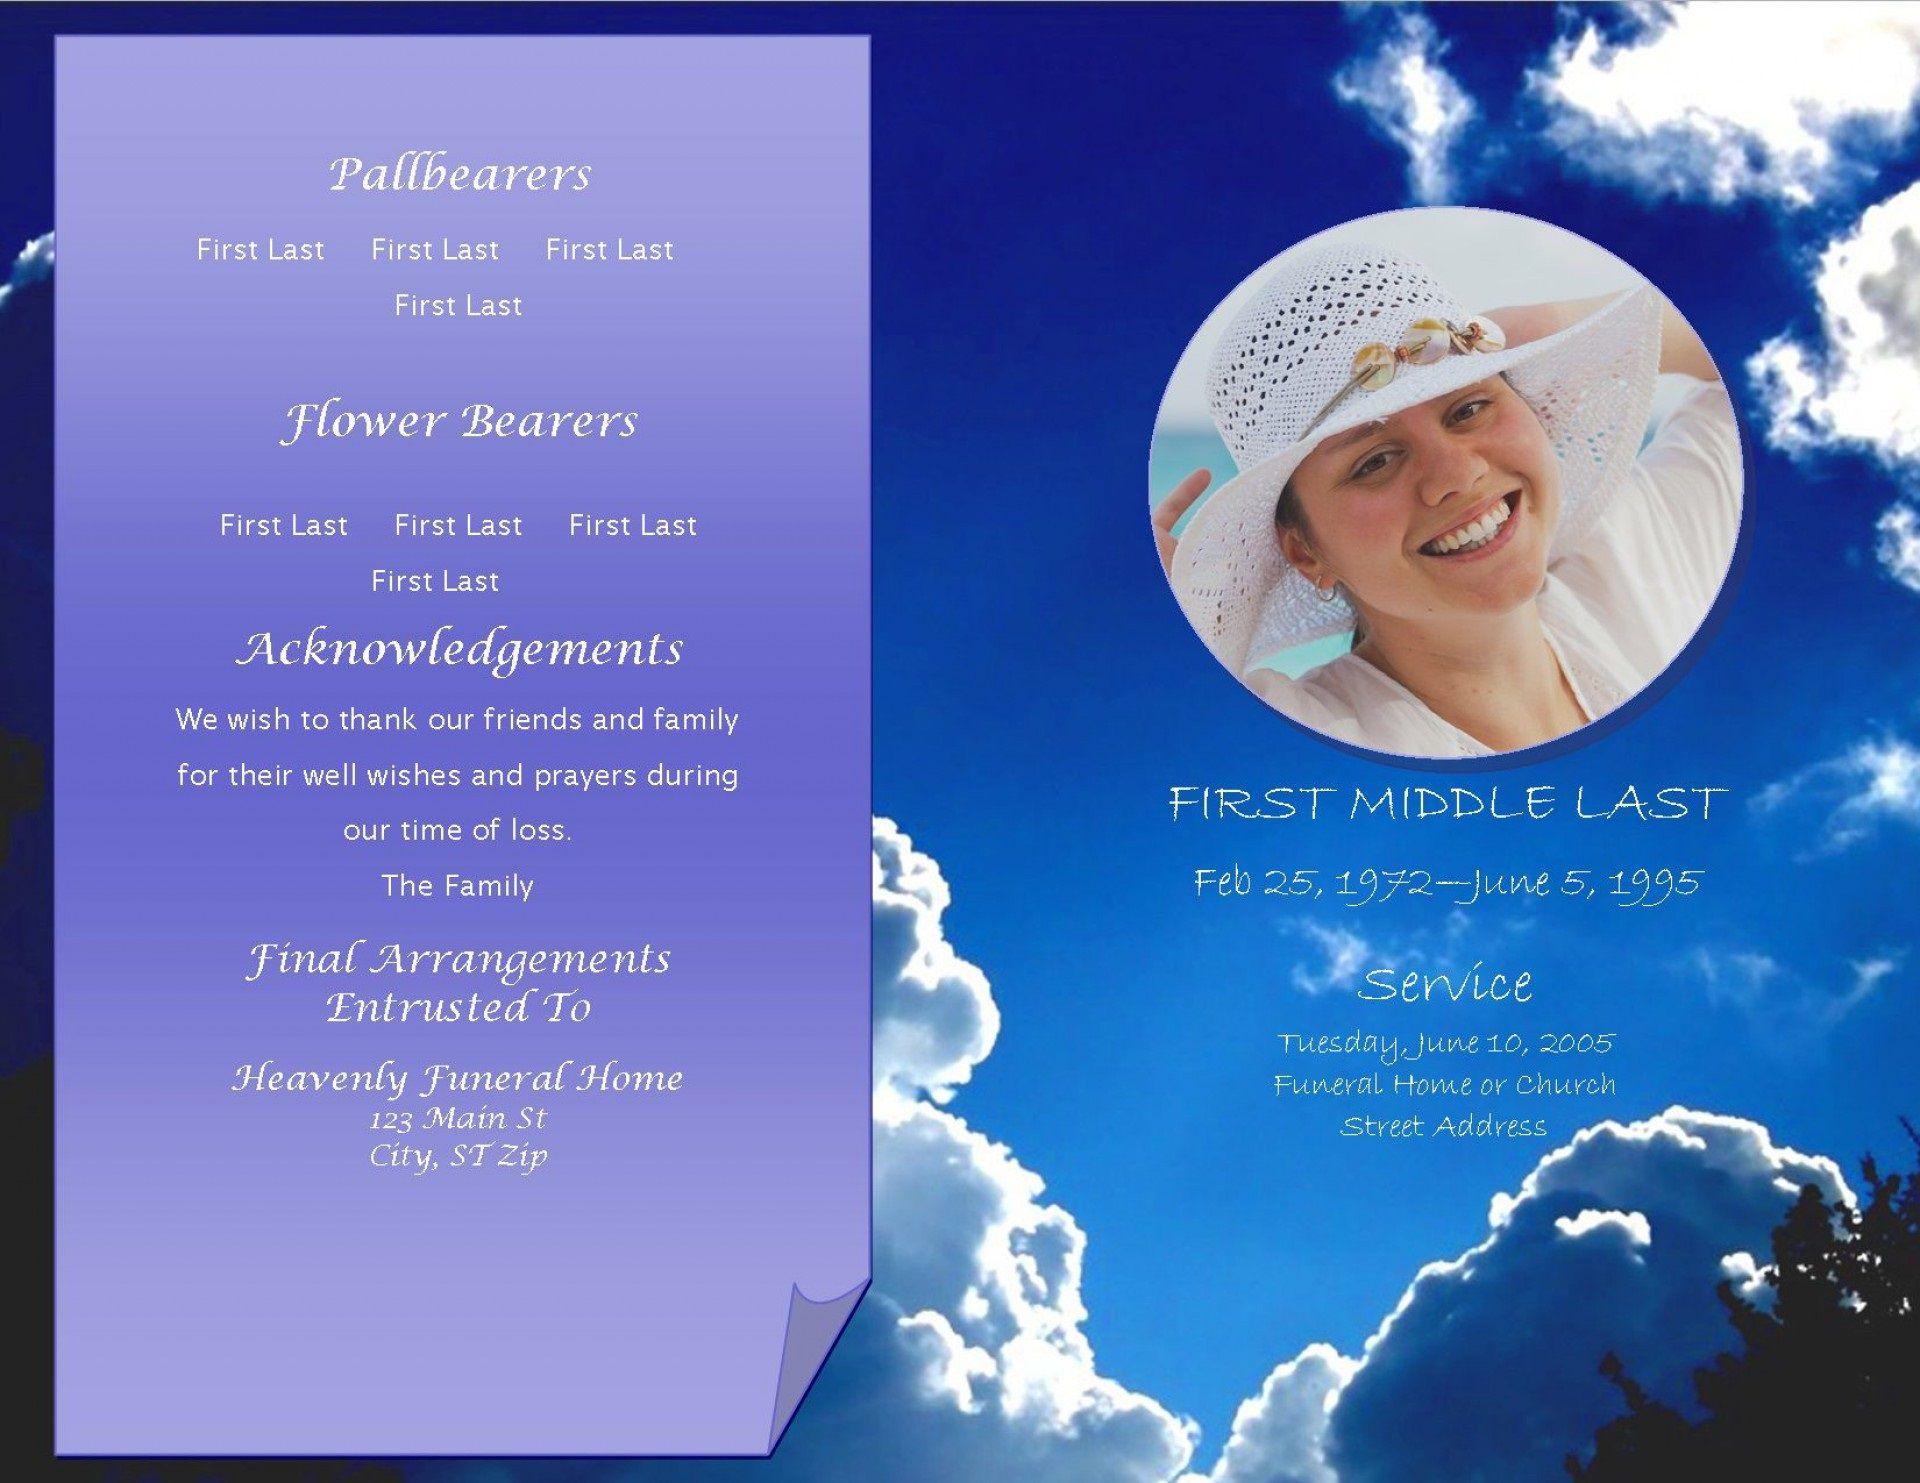 004 Excellent Celebration Of Life Invitation Template Free Concept Full